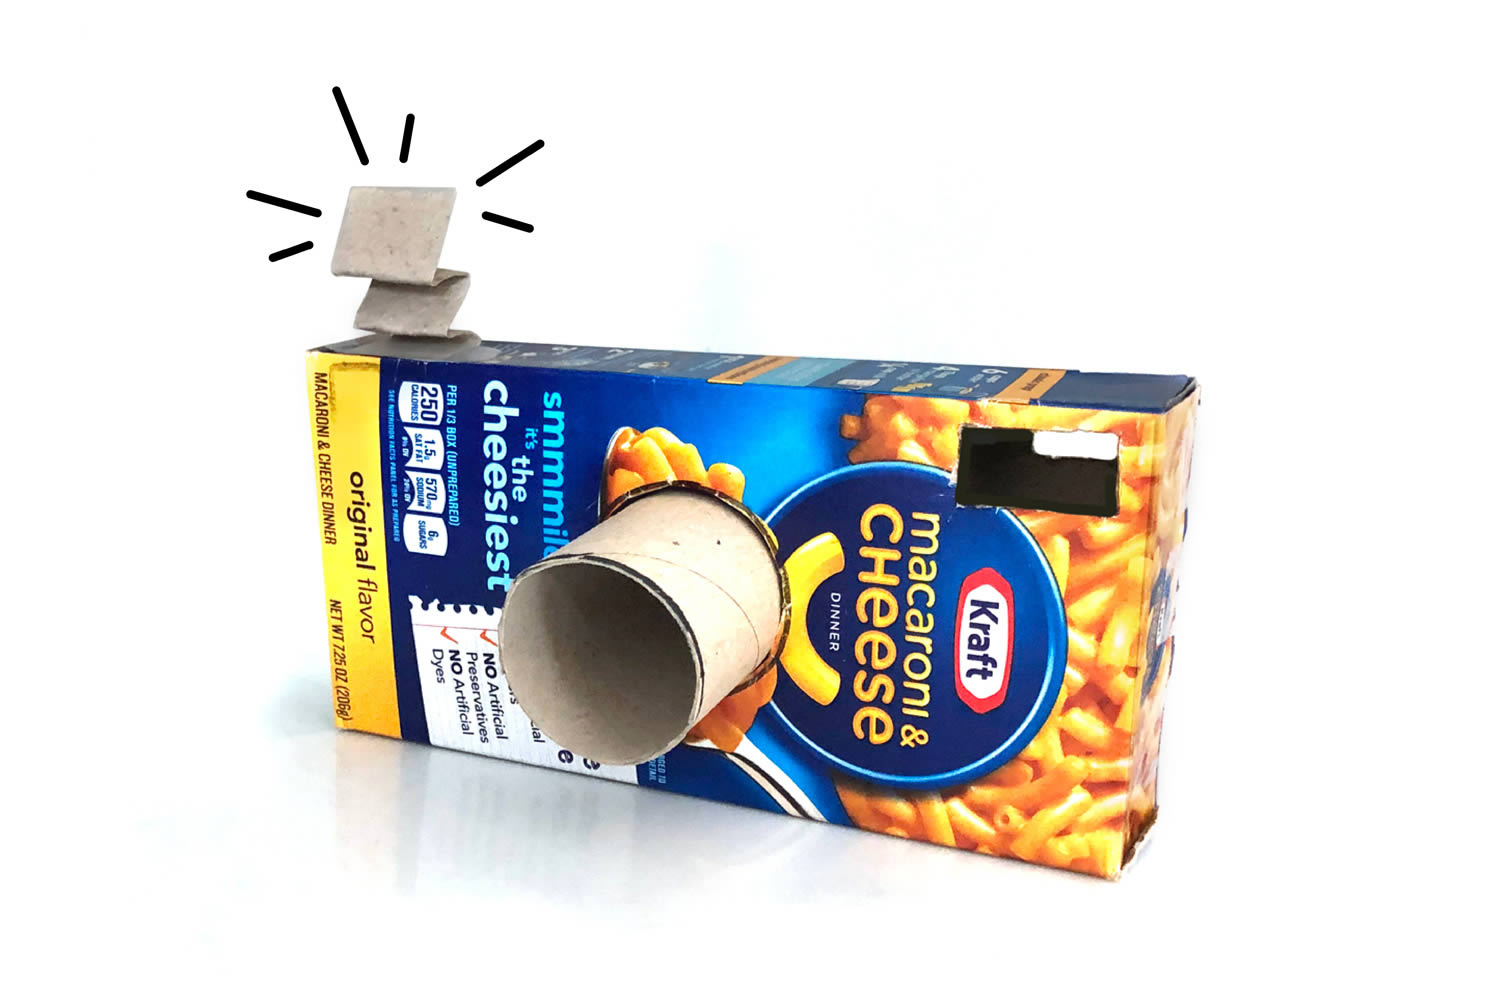 Mac and Cheese Box Camera